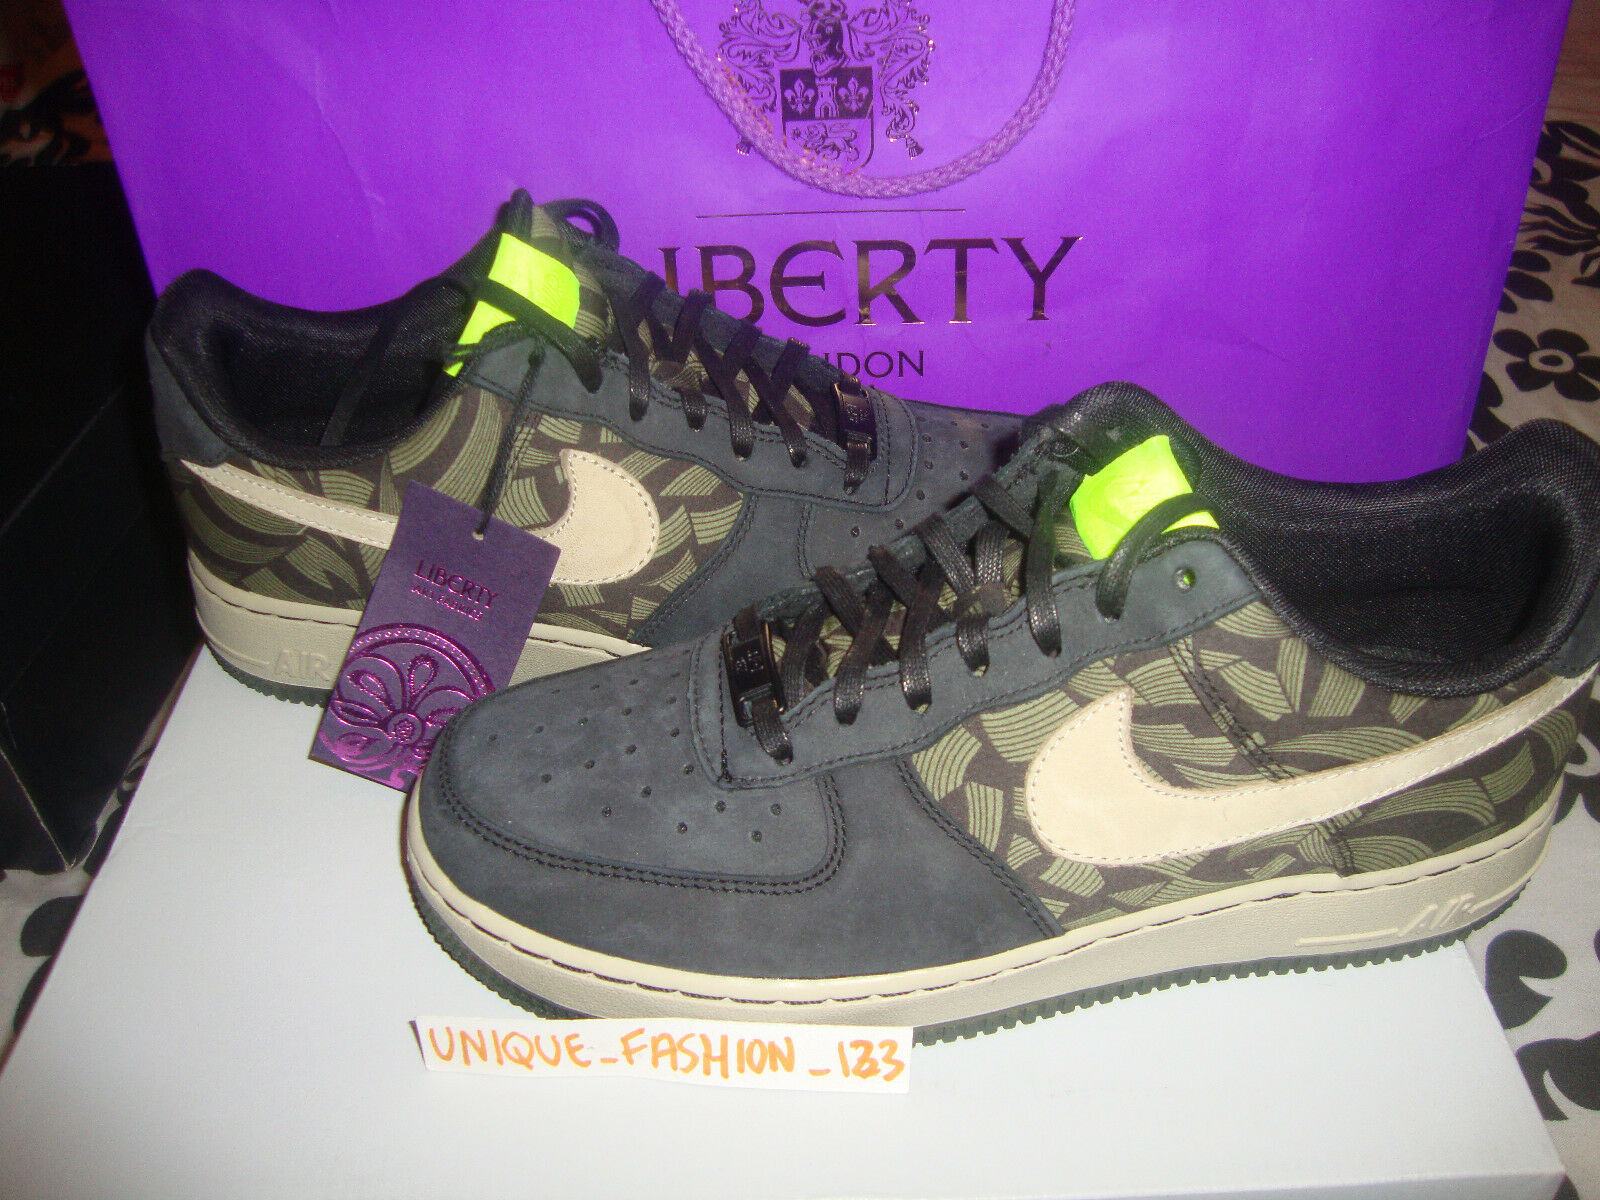 Nike Liberty of Force London Air Force of 1 Low6 US 8.5 gris US 7 gris EU 40 Lotus Jazz 1f1977